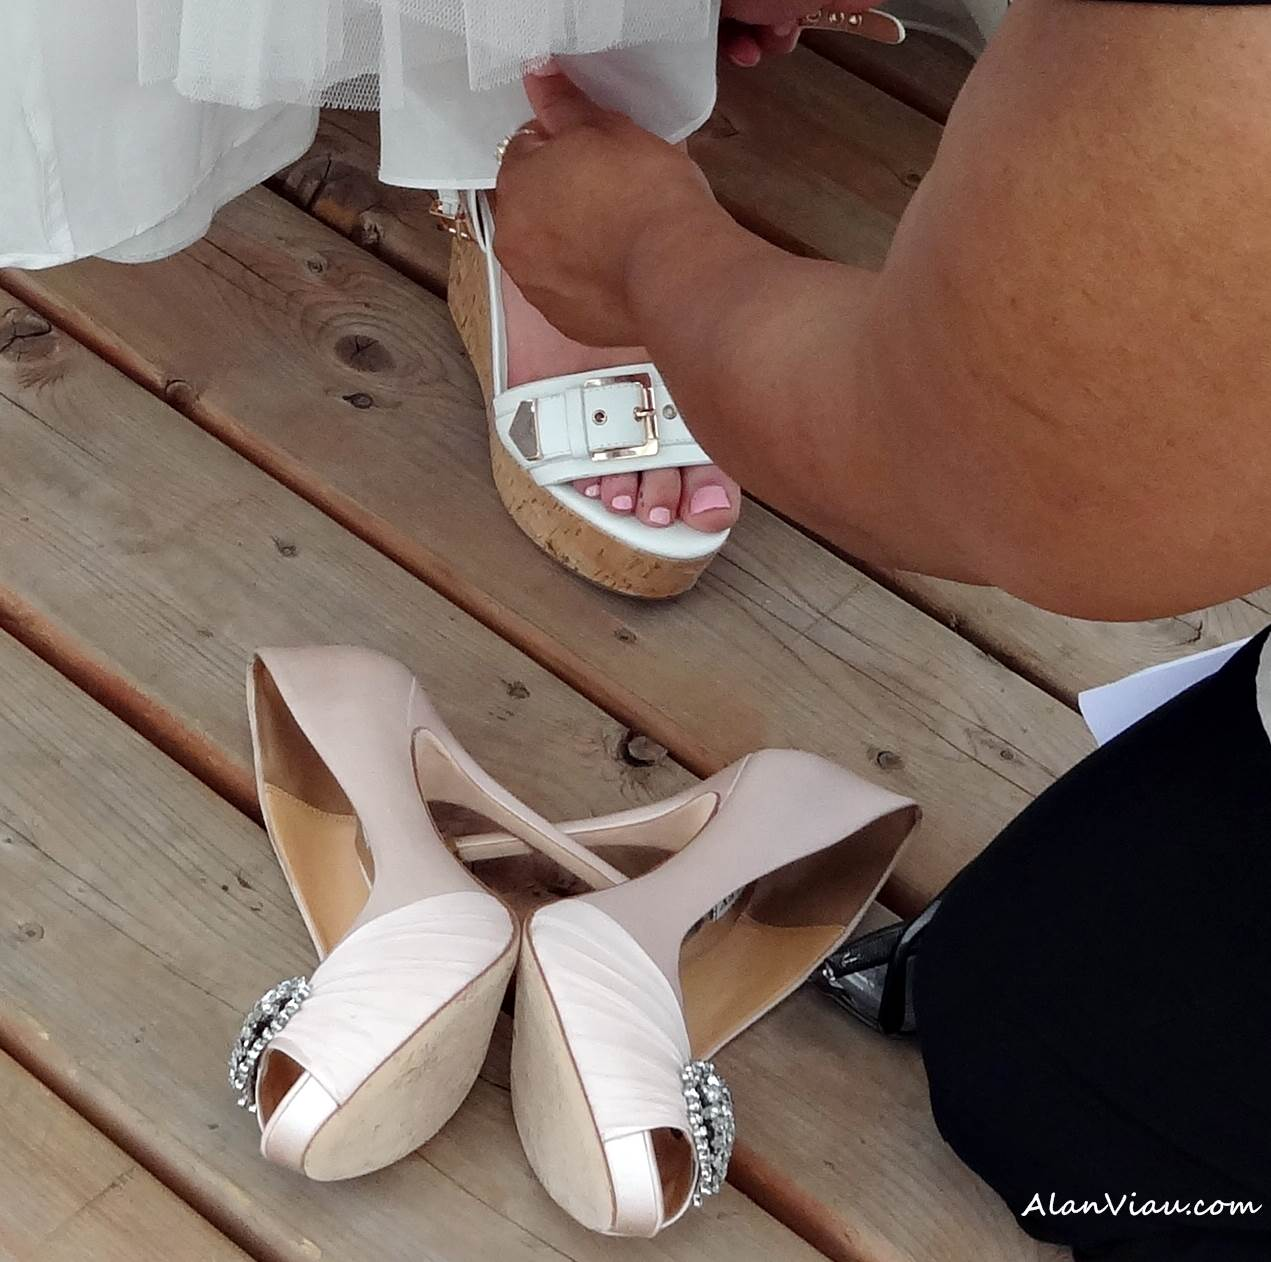 Bridal Shoes Ottawa: After The Wedding Dress, Say Yes To The Shoes